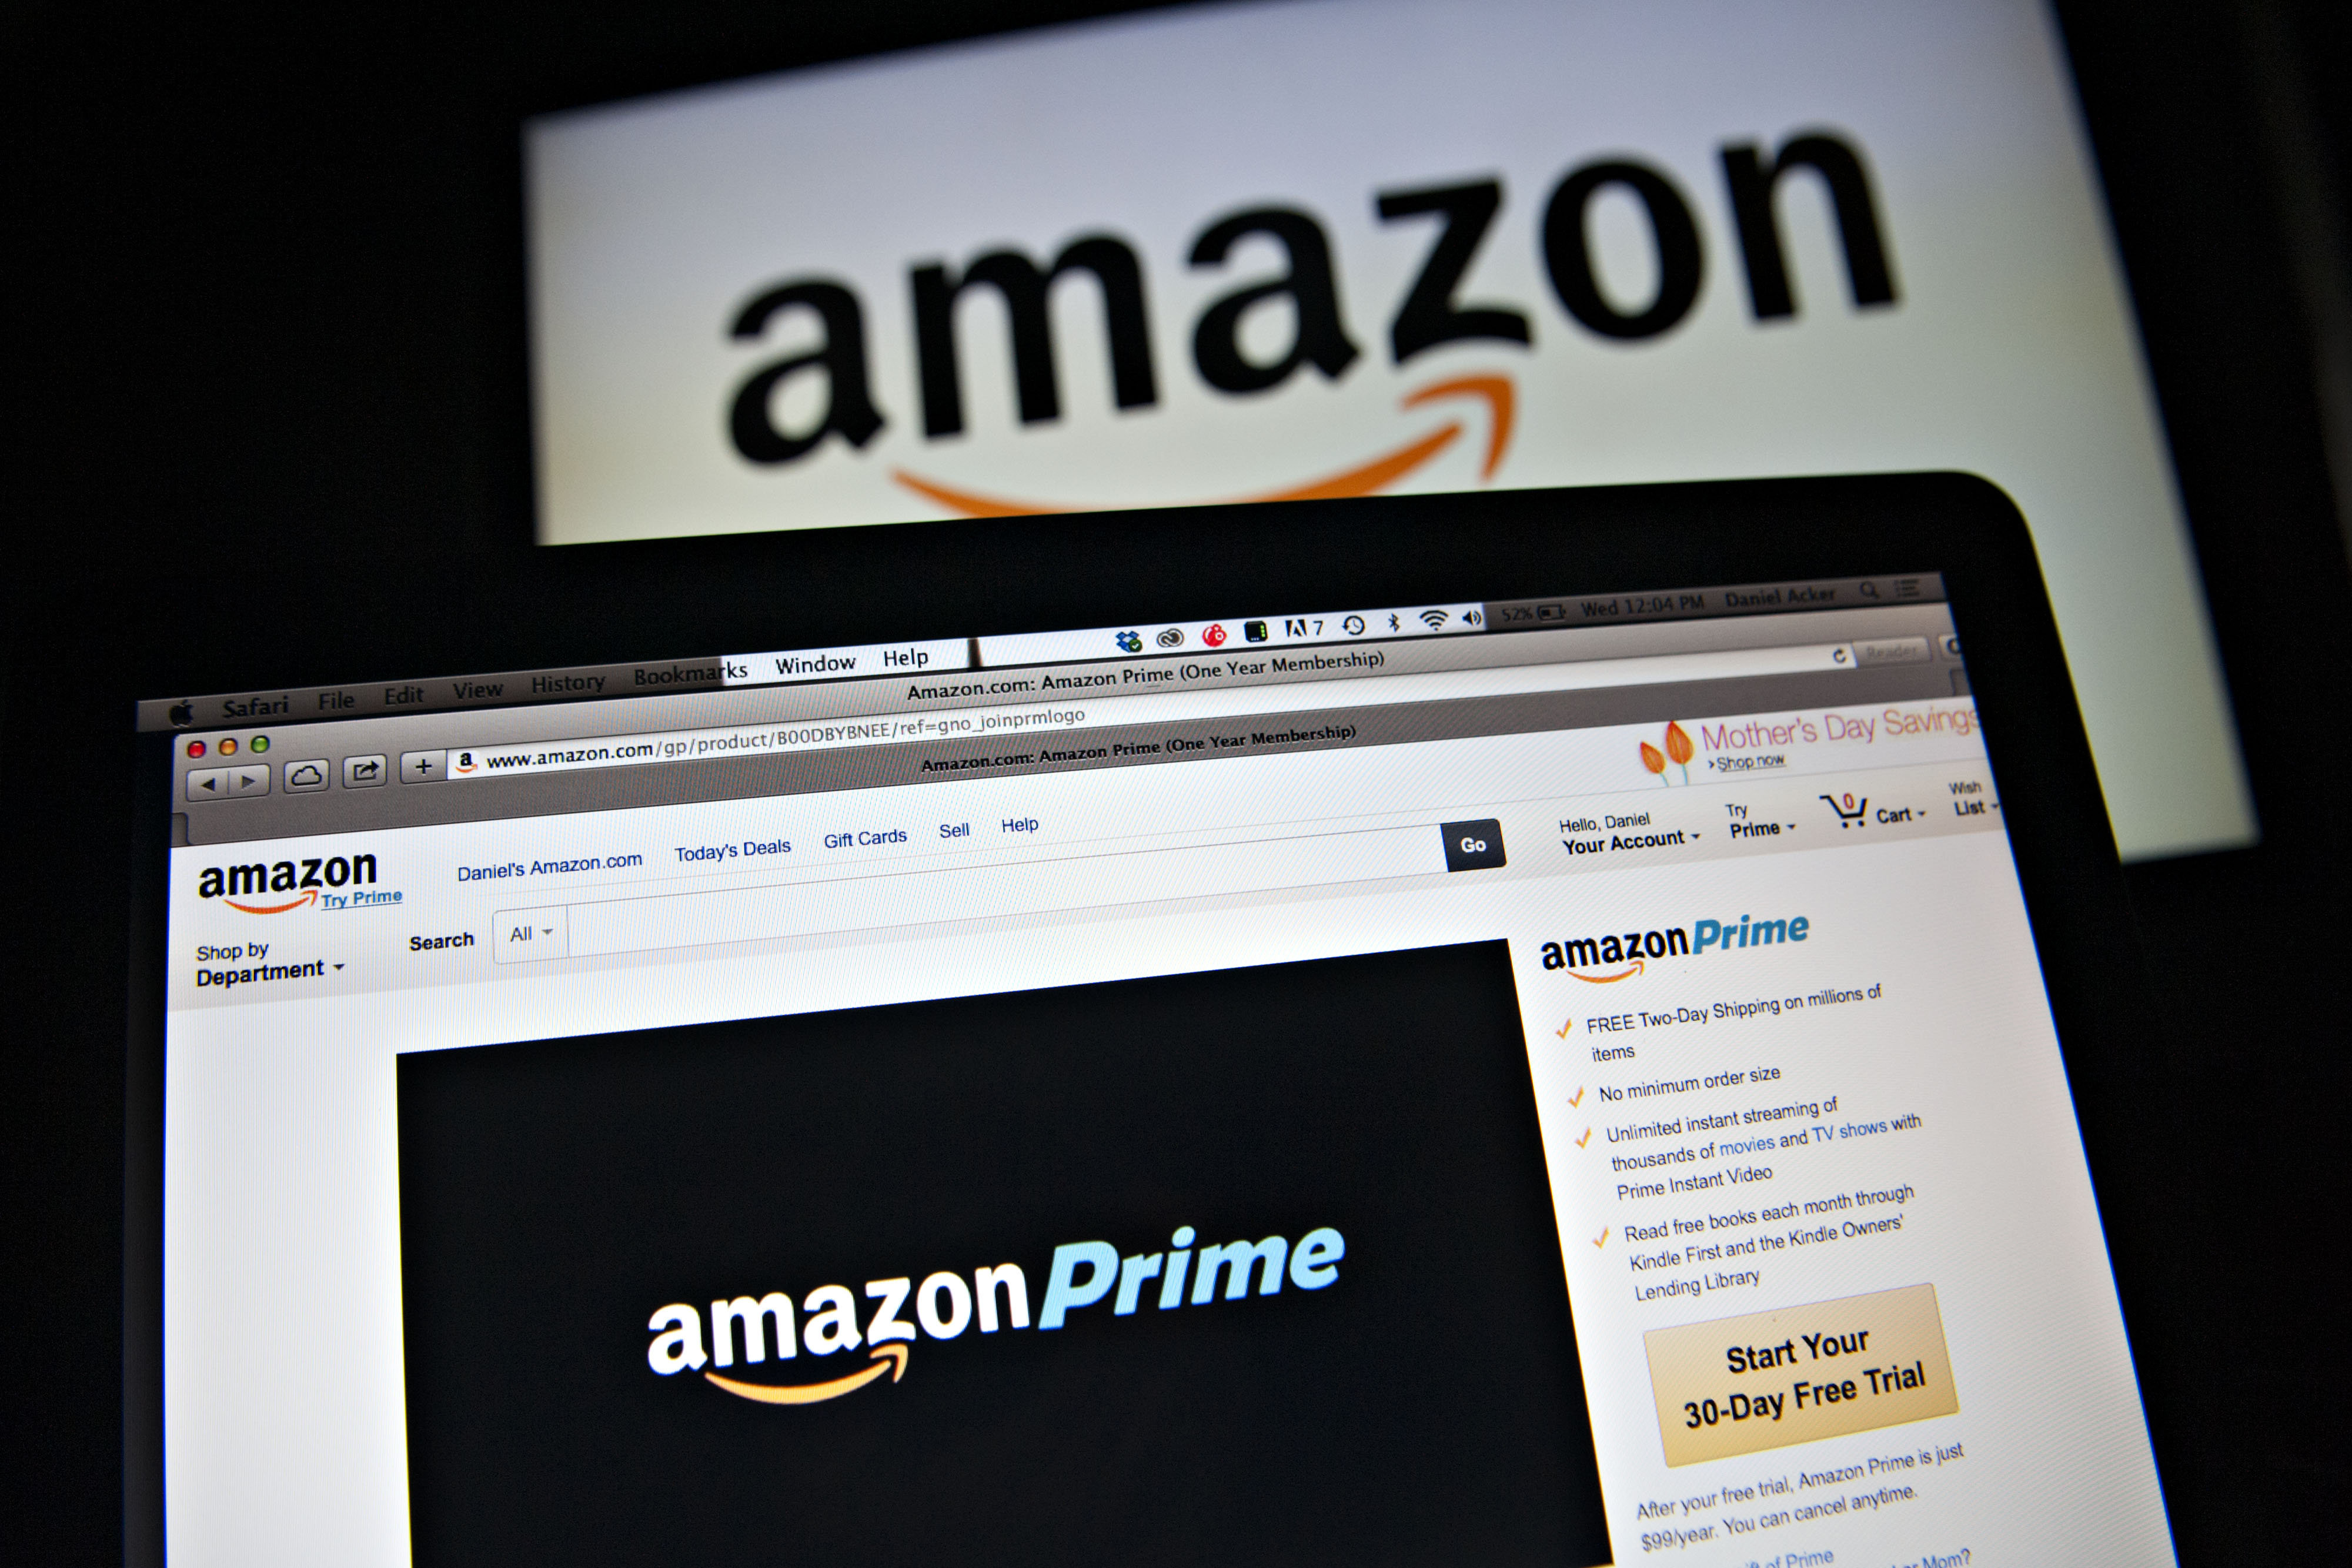 Amazon opens more pick-up outlets near college campuses